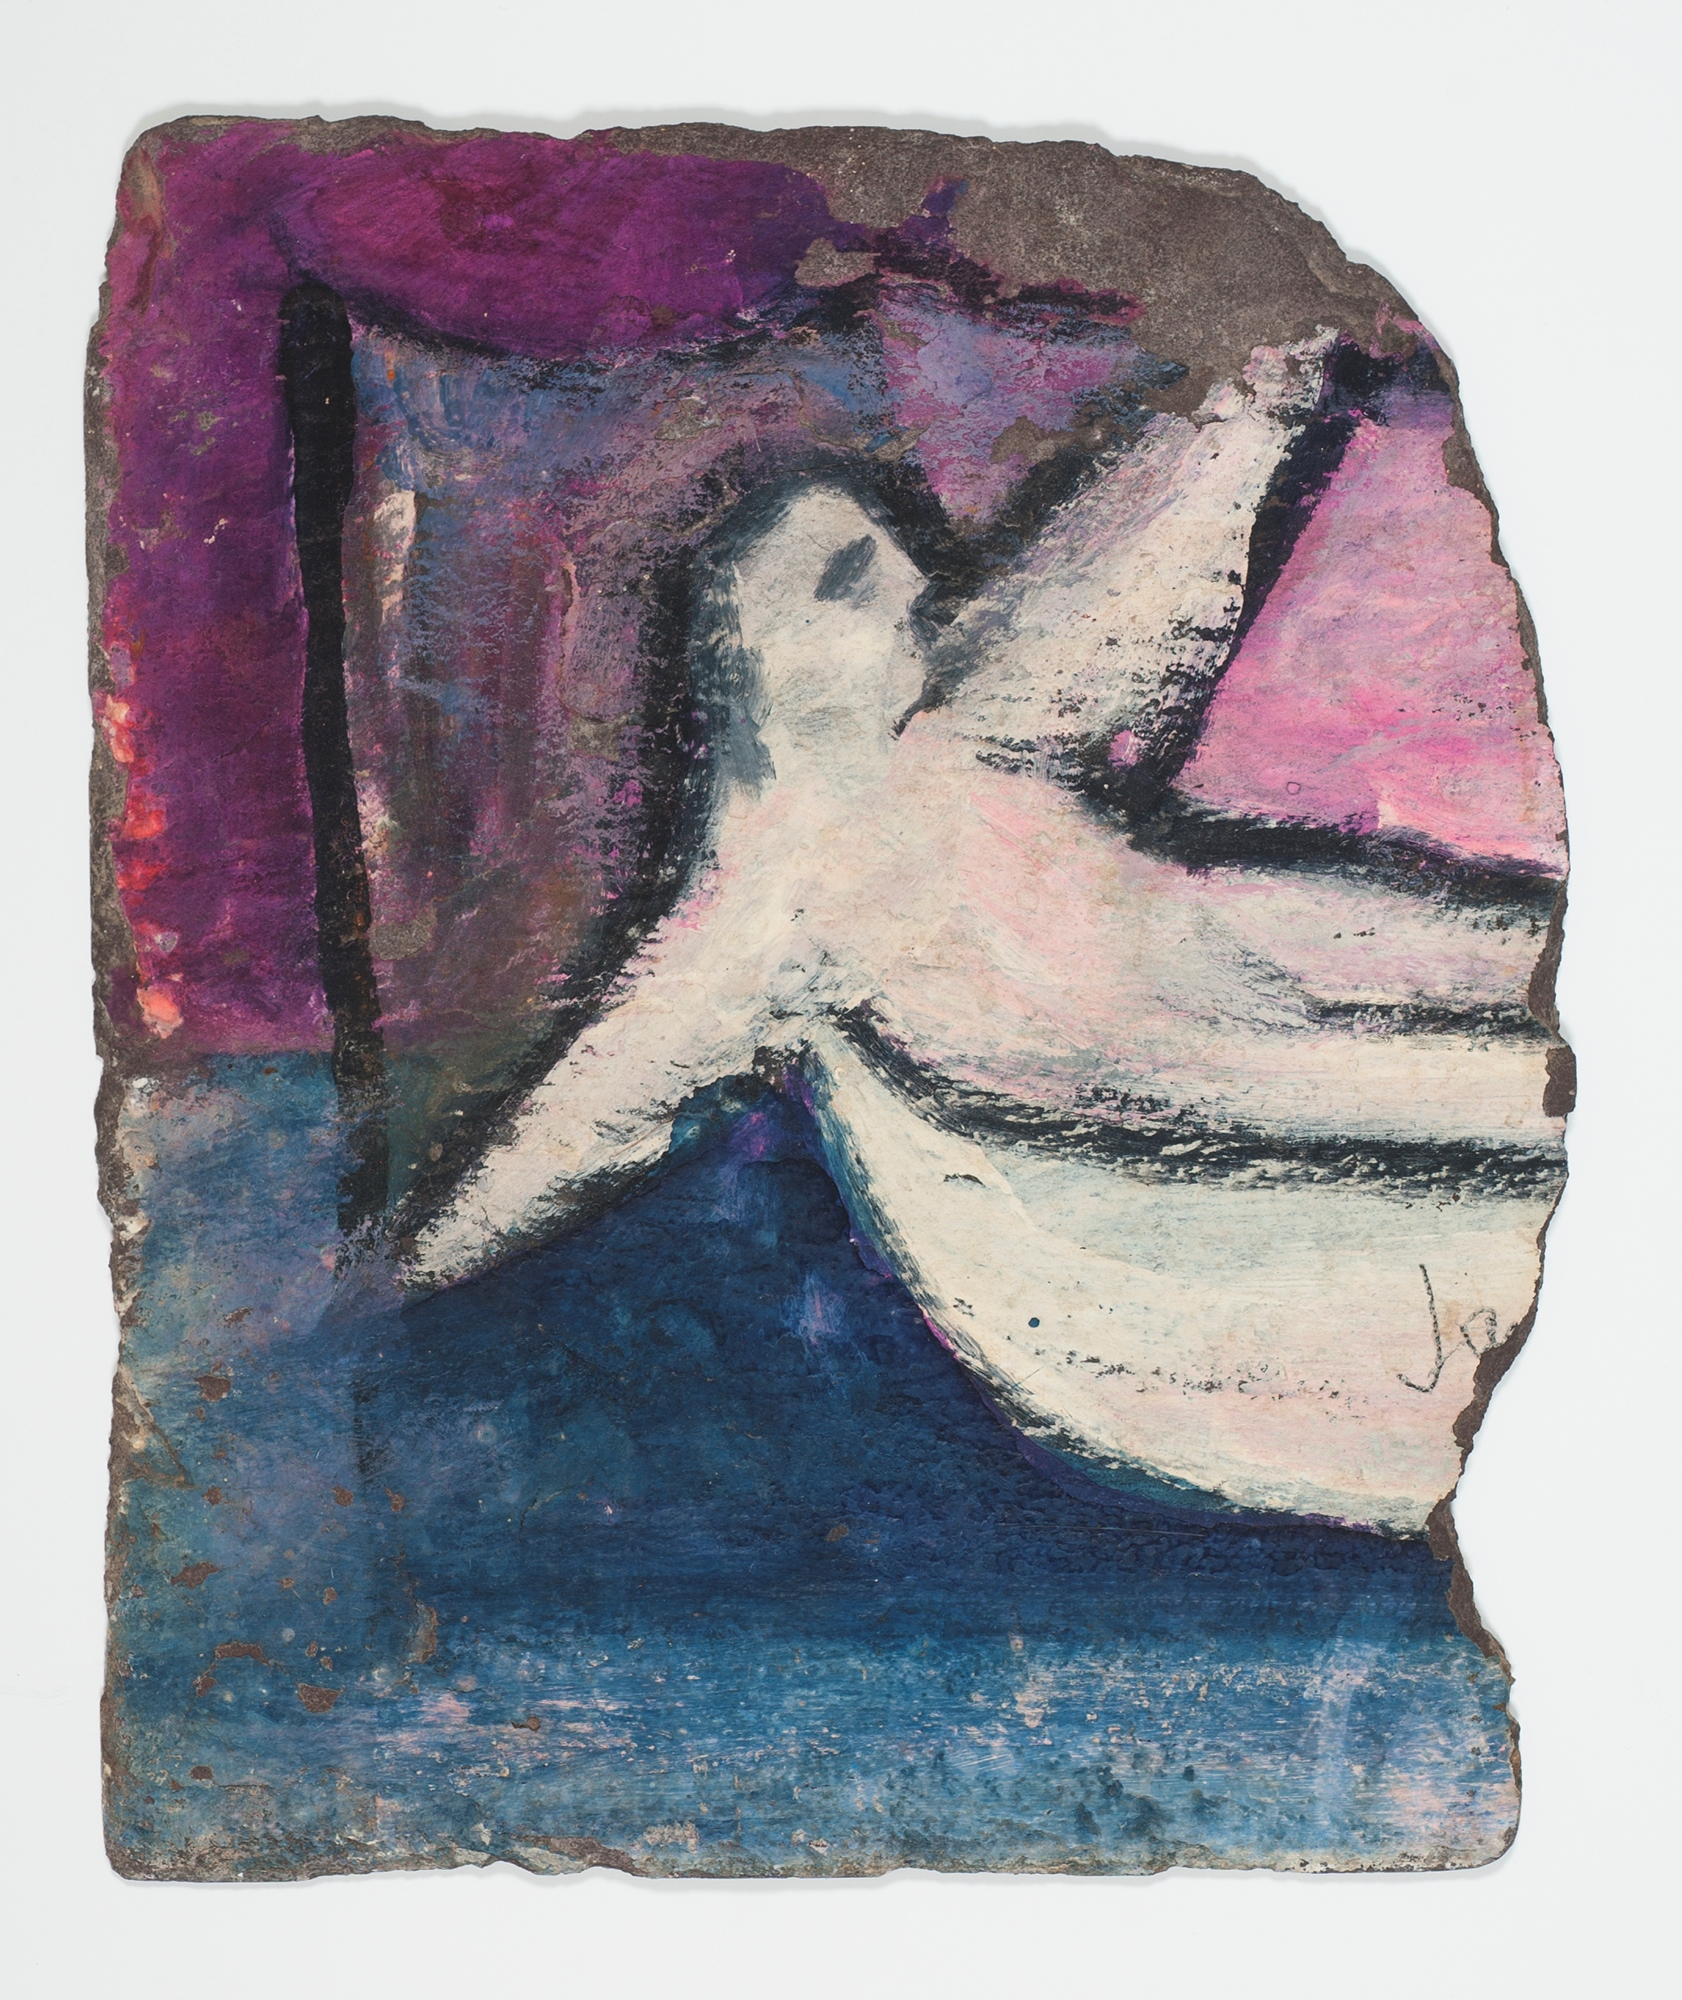 Sidney Nolan  Untitled (Figure in Boat)  January1942 enamel on slate 22 x 26.2 cm (irreg.) Heide Museum of Modern Art, Melbourne Bequest of Barrett Reid 2000 © Sidney Nolan Trust